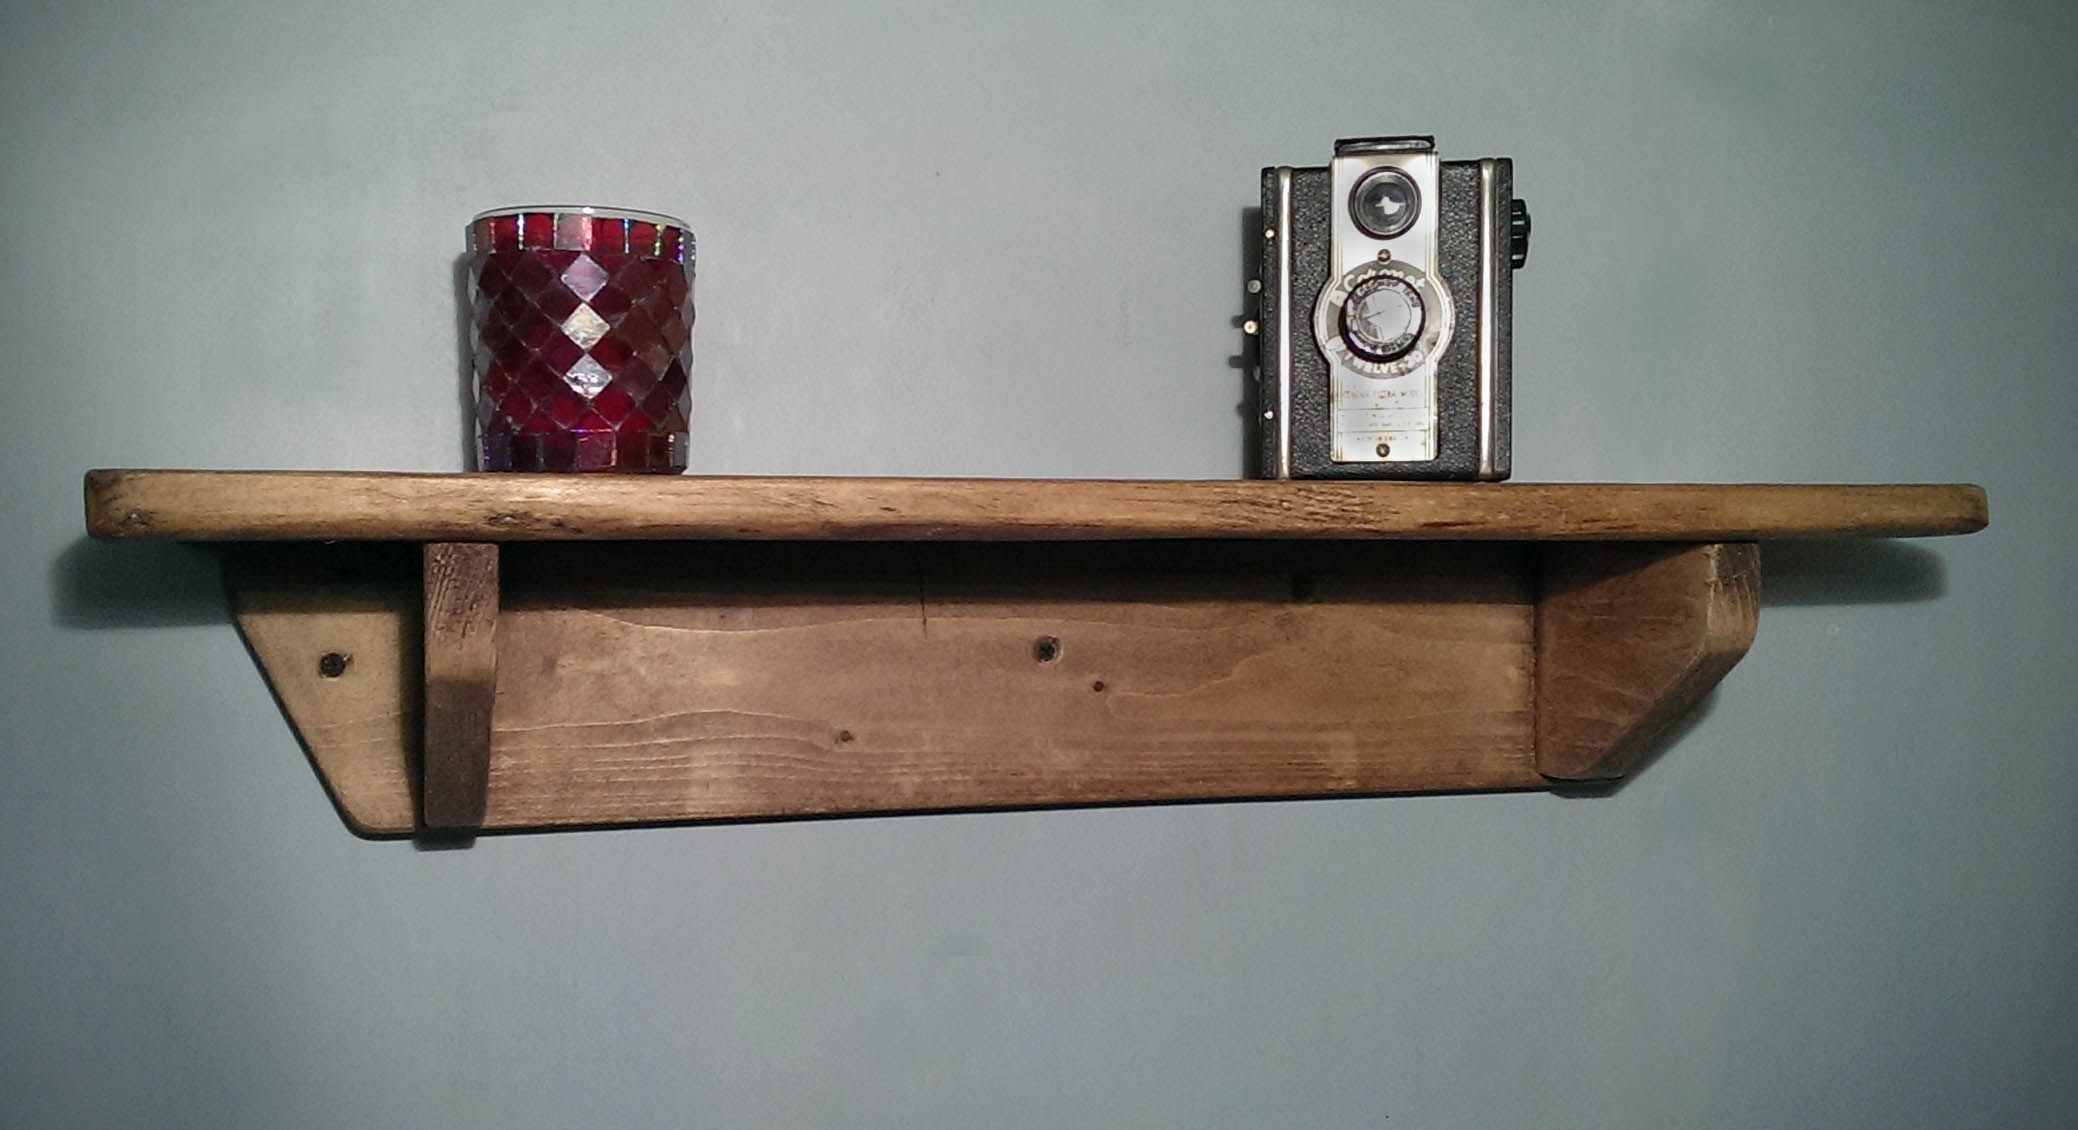 Handmade Available On Etsy Uk Rustic Bookshelves In Eco Friendly Solid